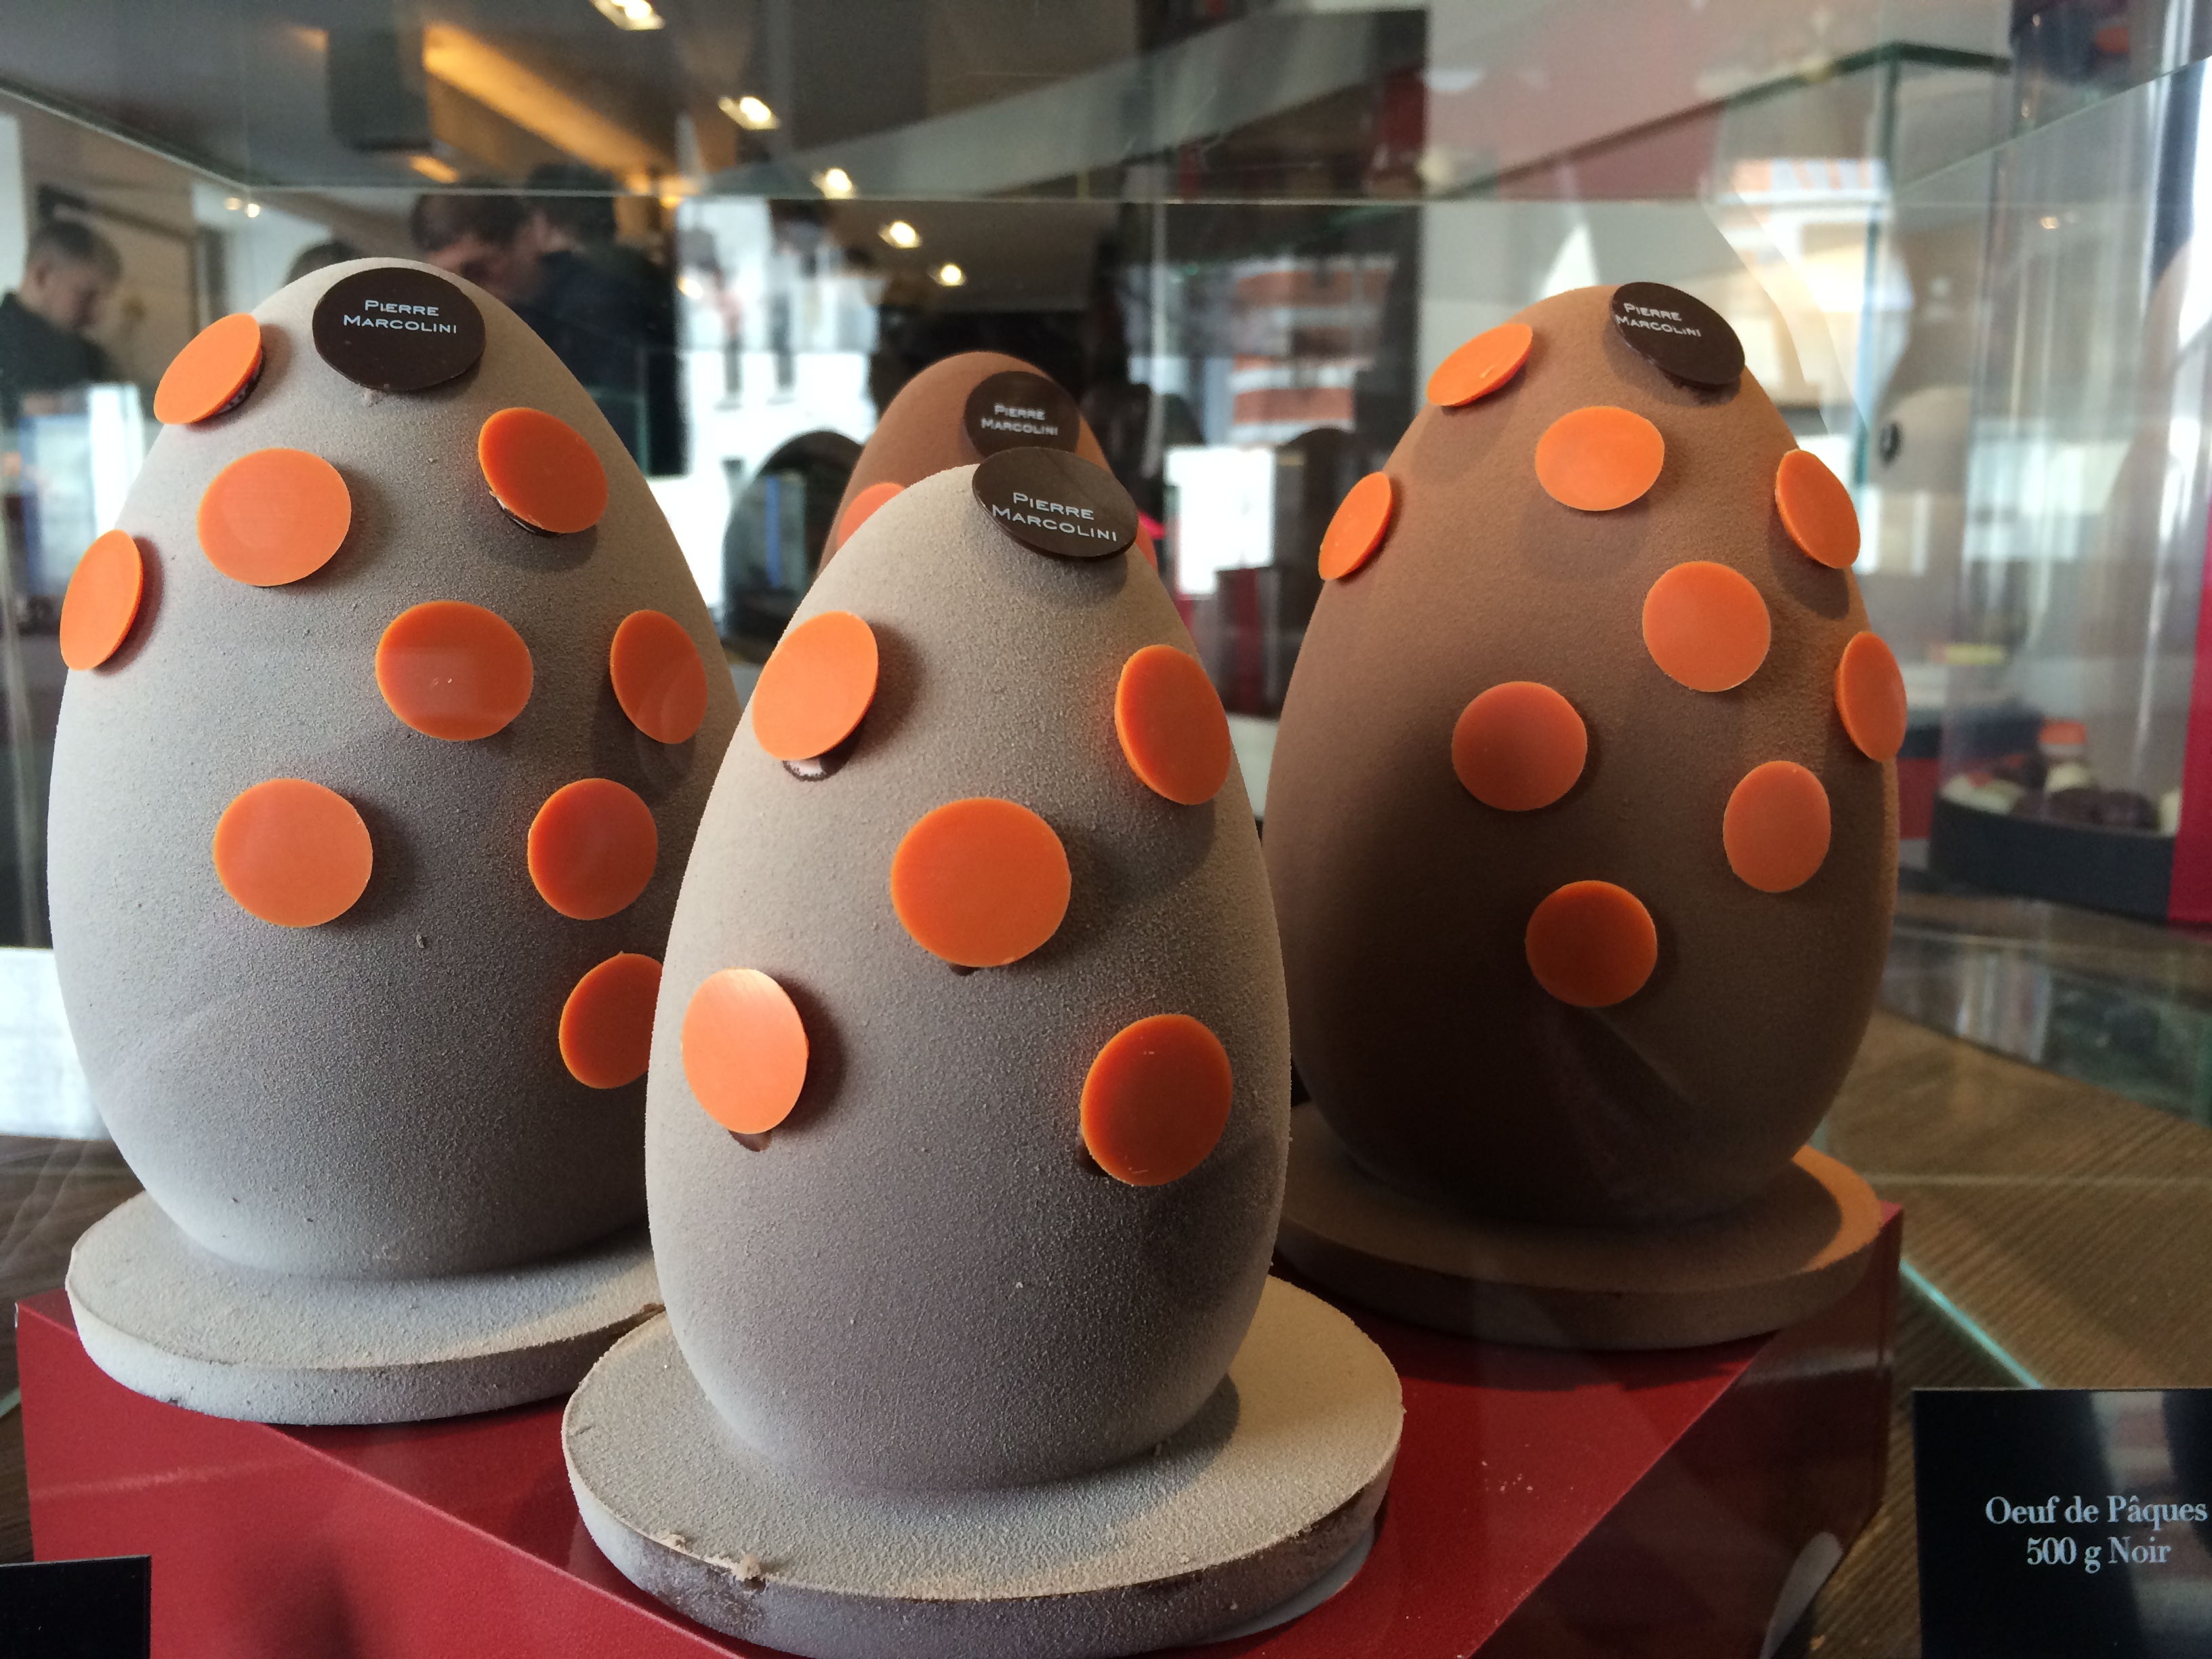 Easter Eggs - Pierre Marcolini